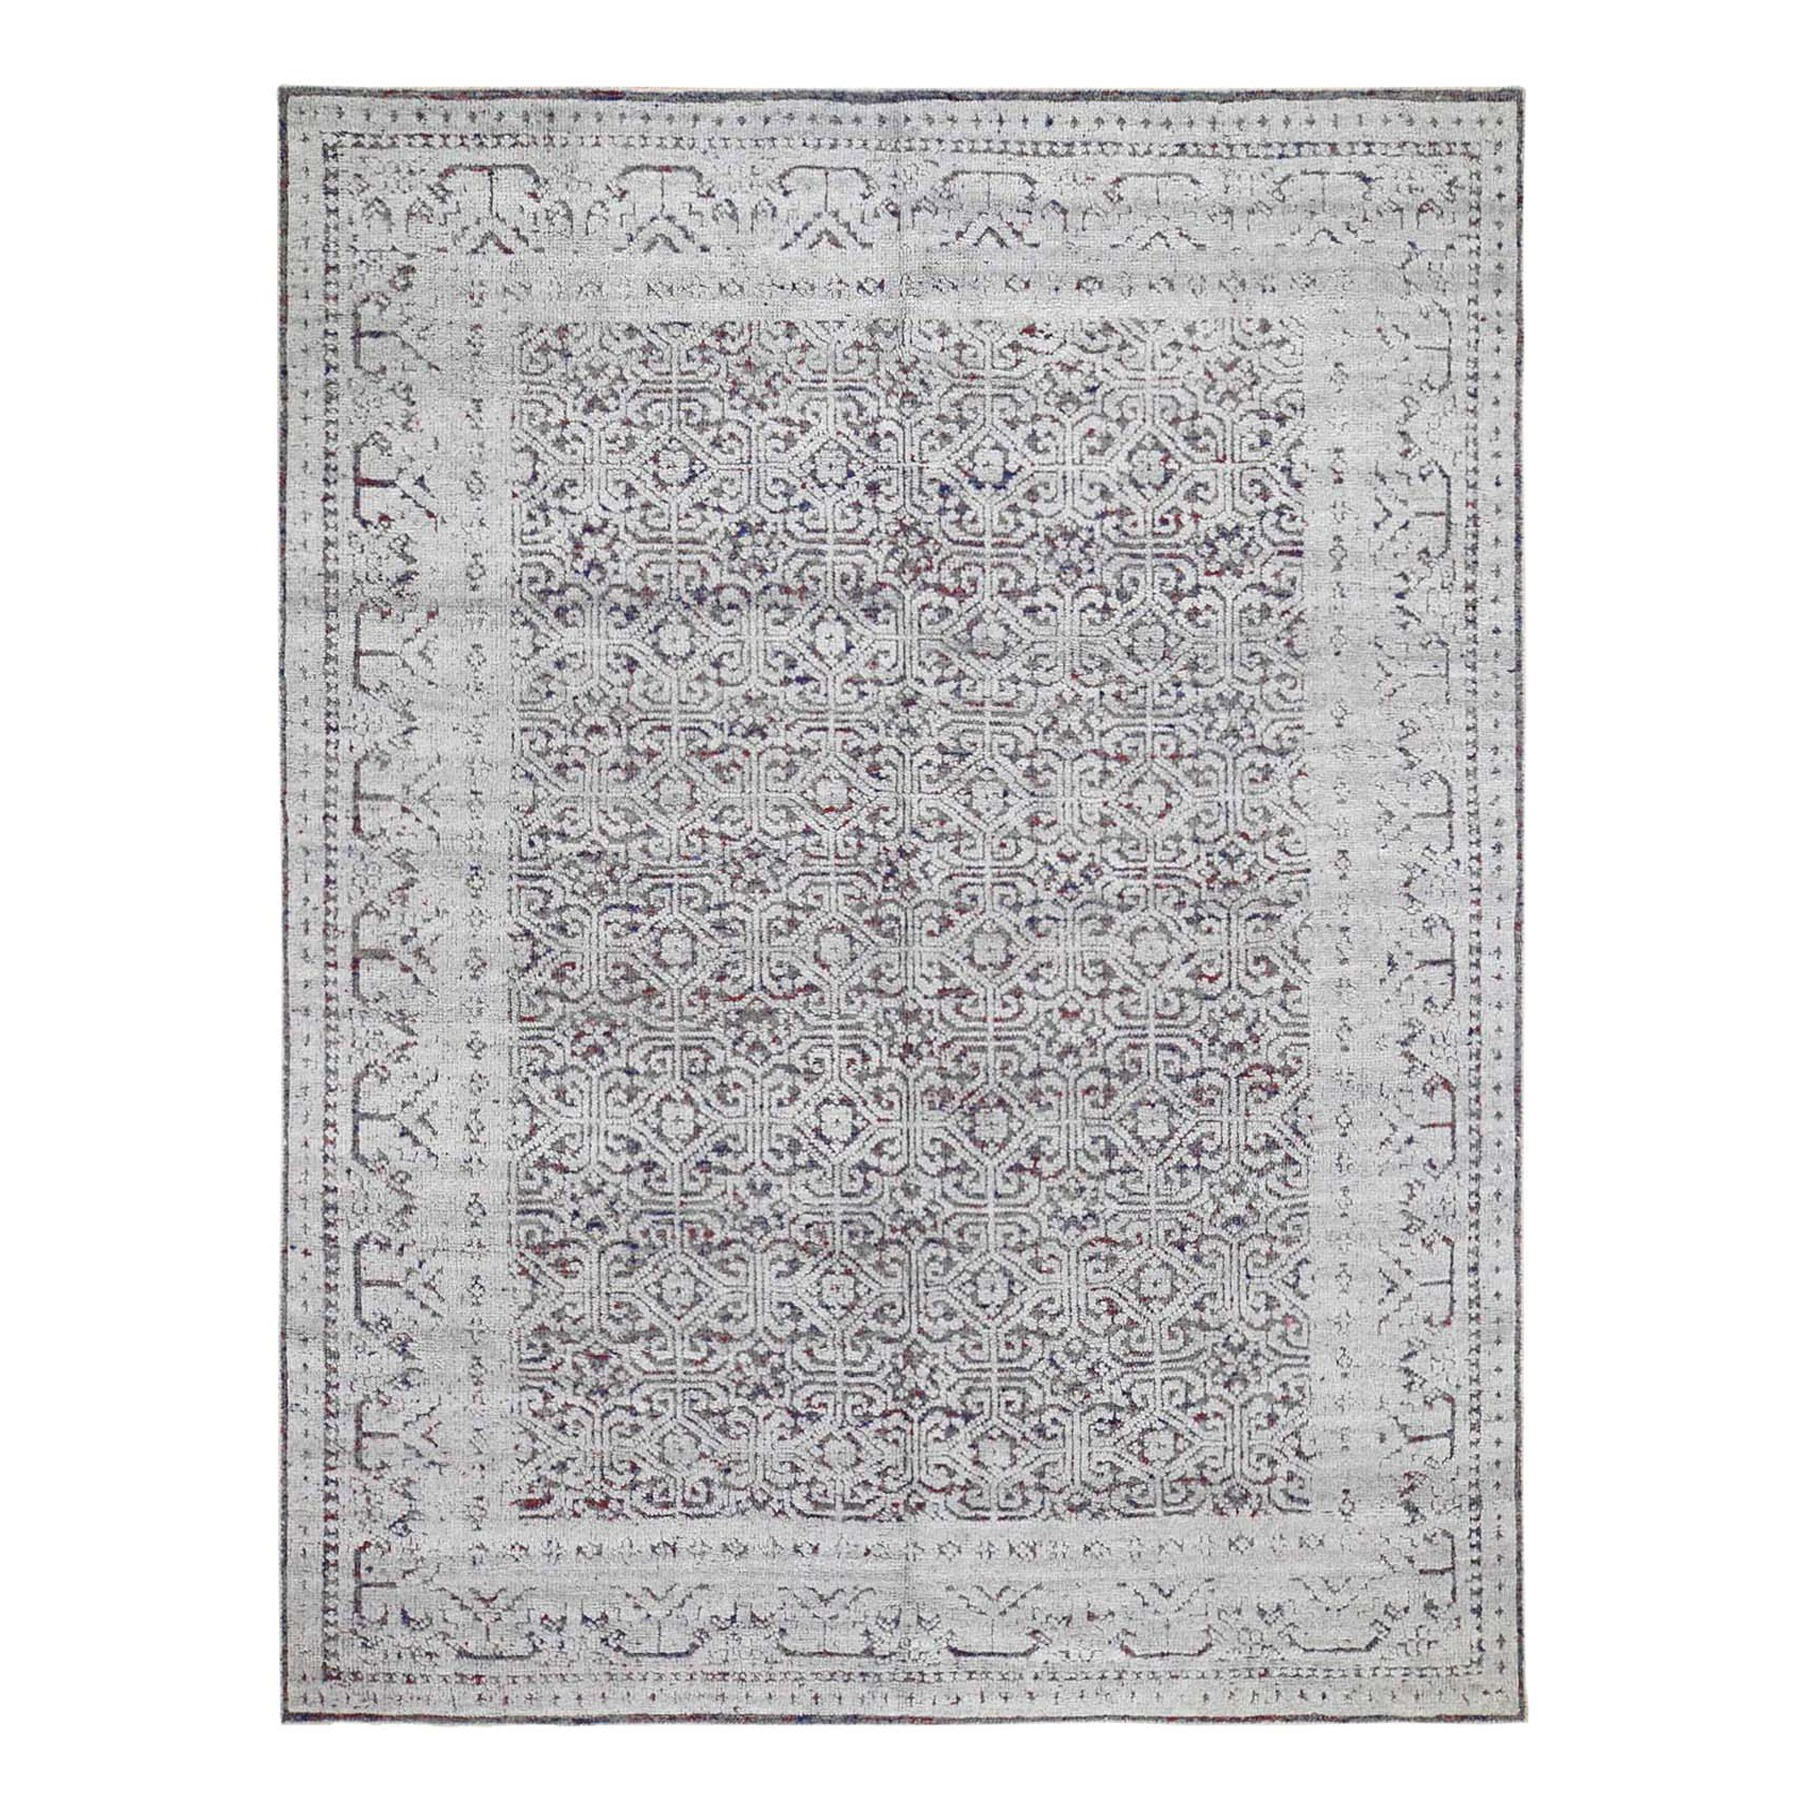 khotan and samarkand rugs LUV411867